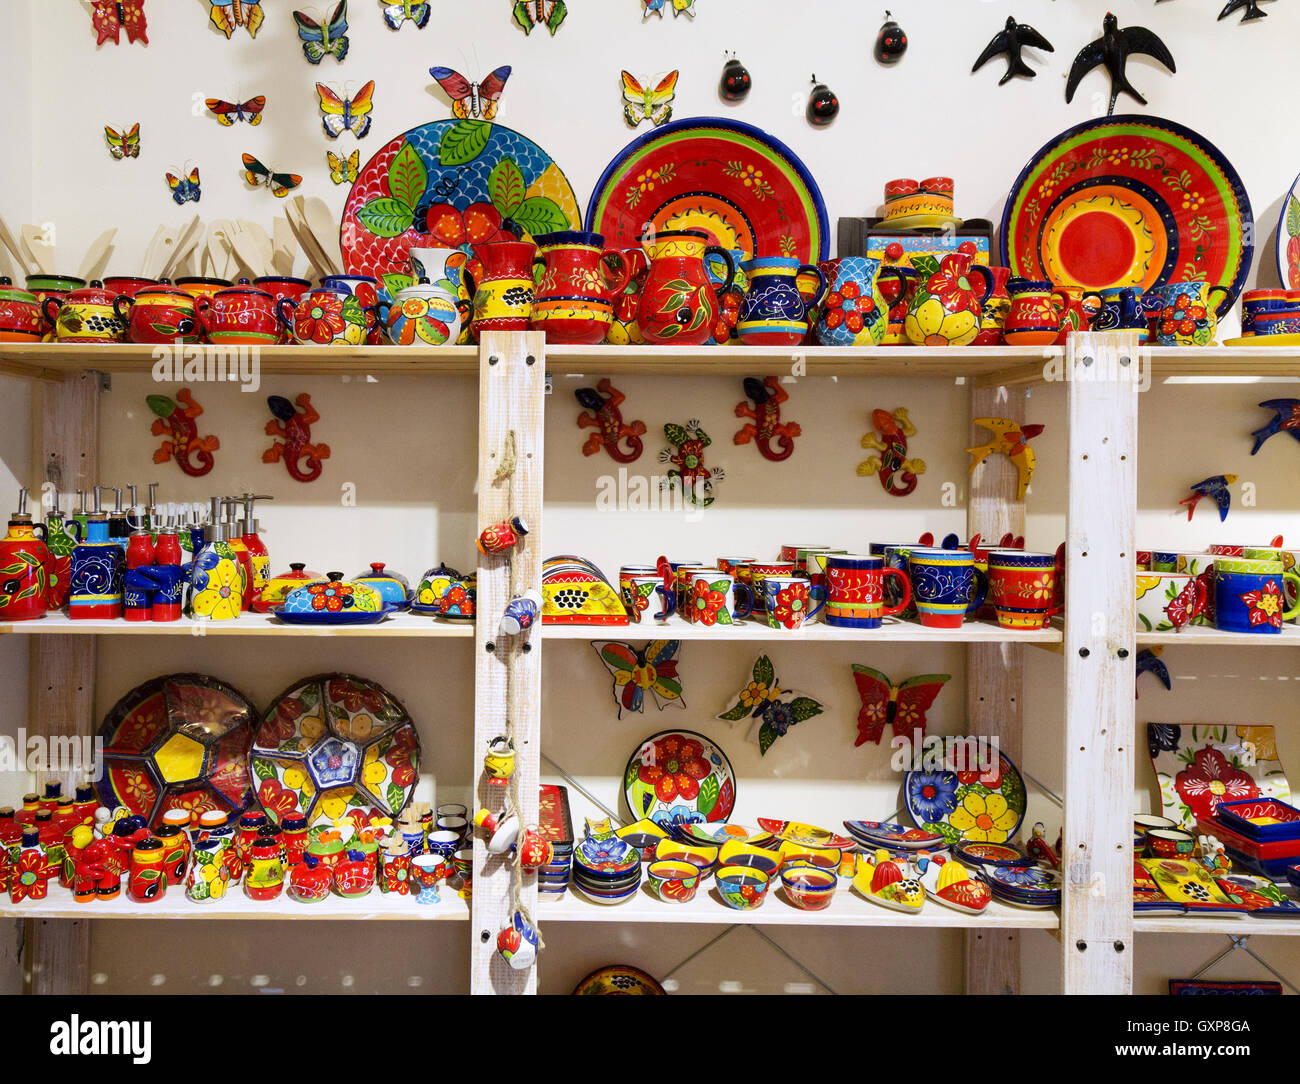 Traditional colourful Algarve pottery for sale, Lagos, Algarve Portugal Europe - Stock Image